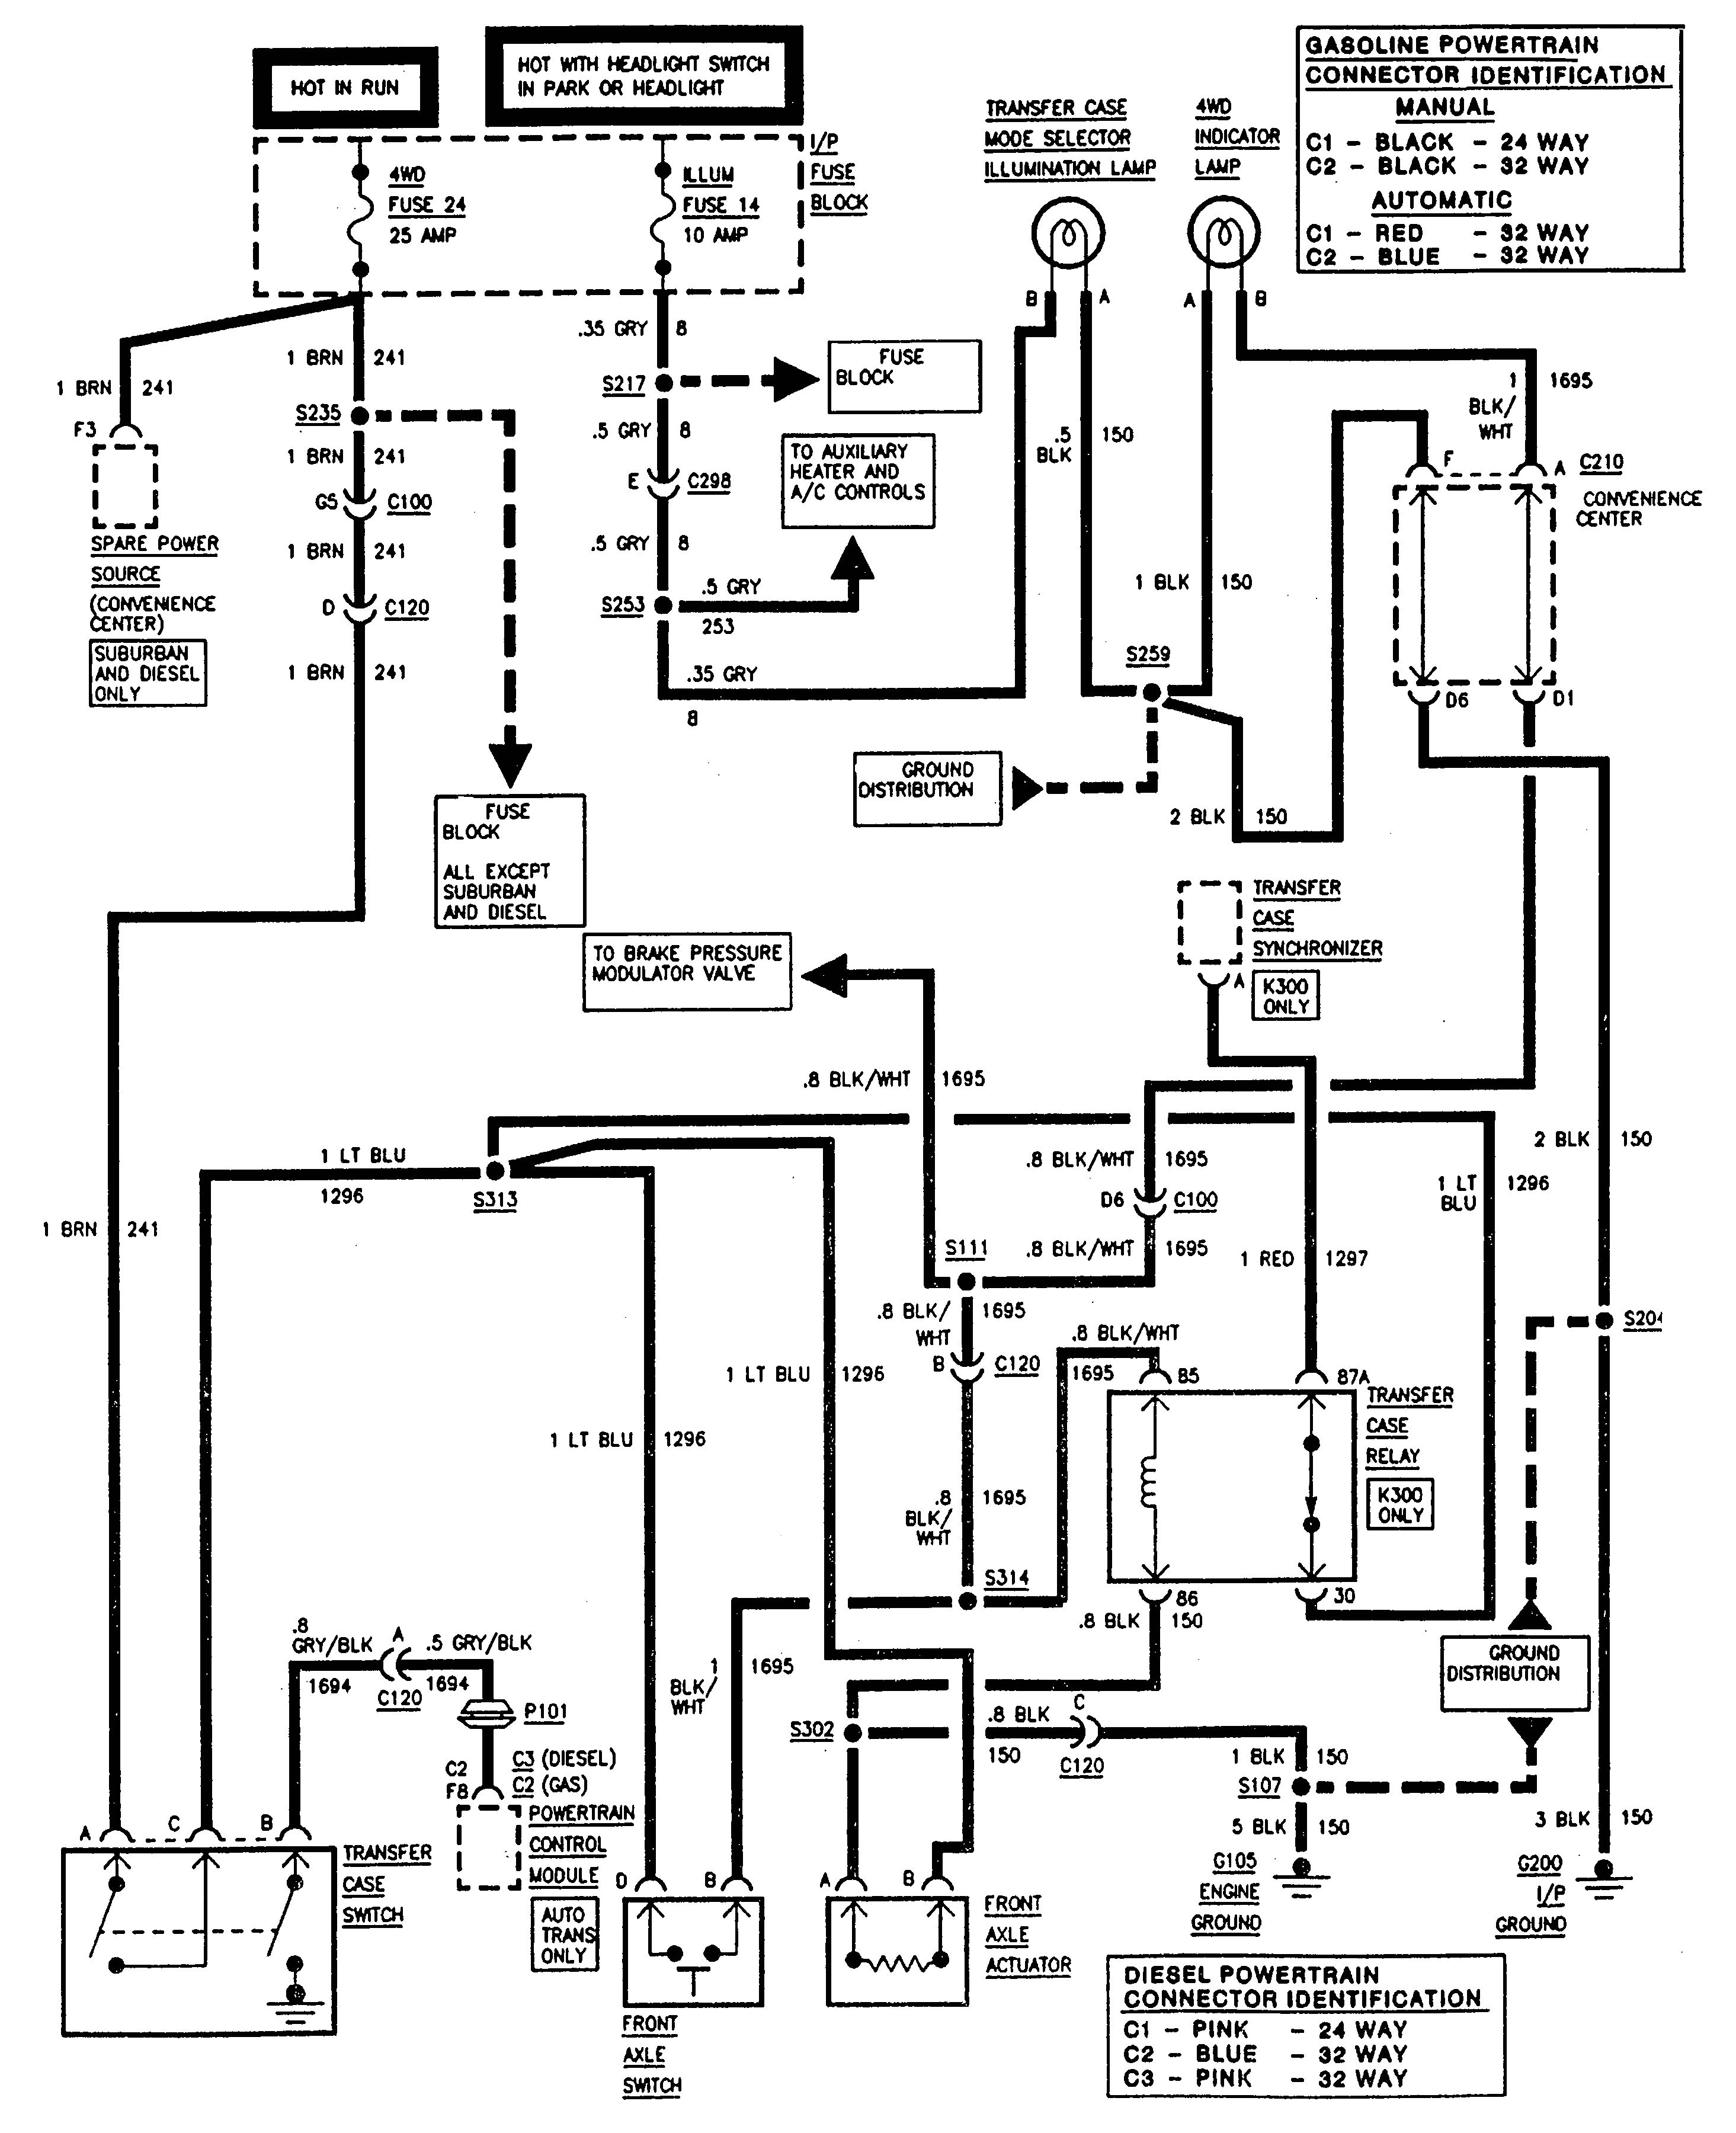 Gmc Sierra 1500 1995 Wiring Diagrams Four Wheel Drive System Carknowledge Info